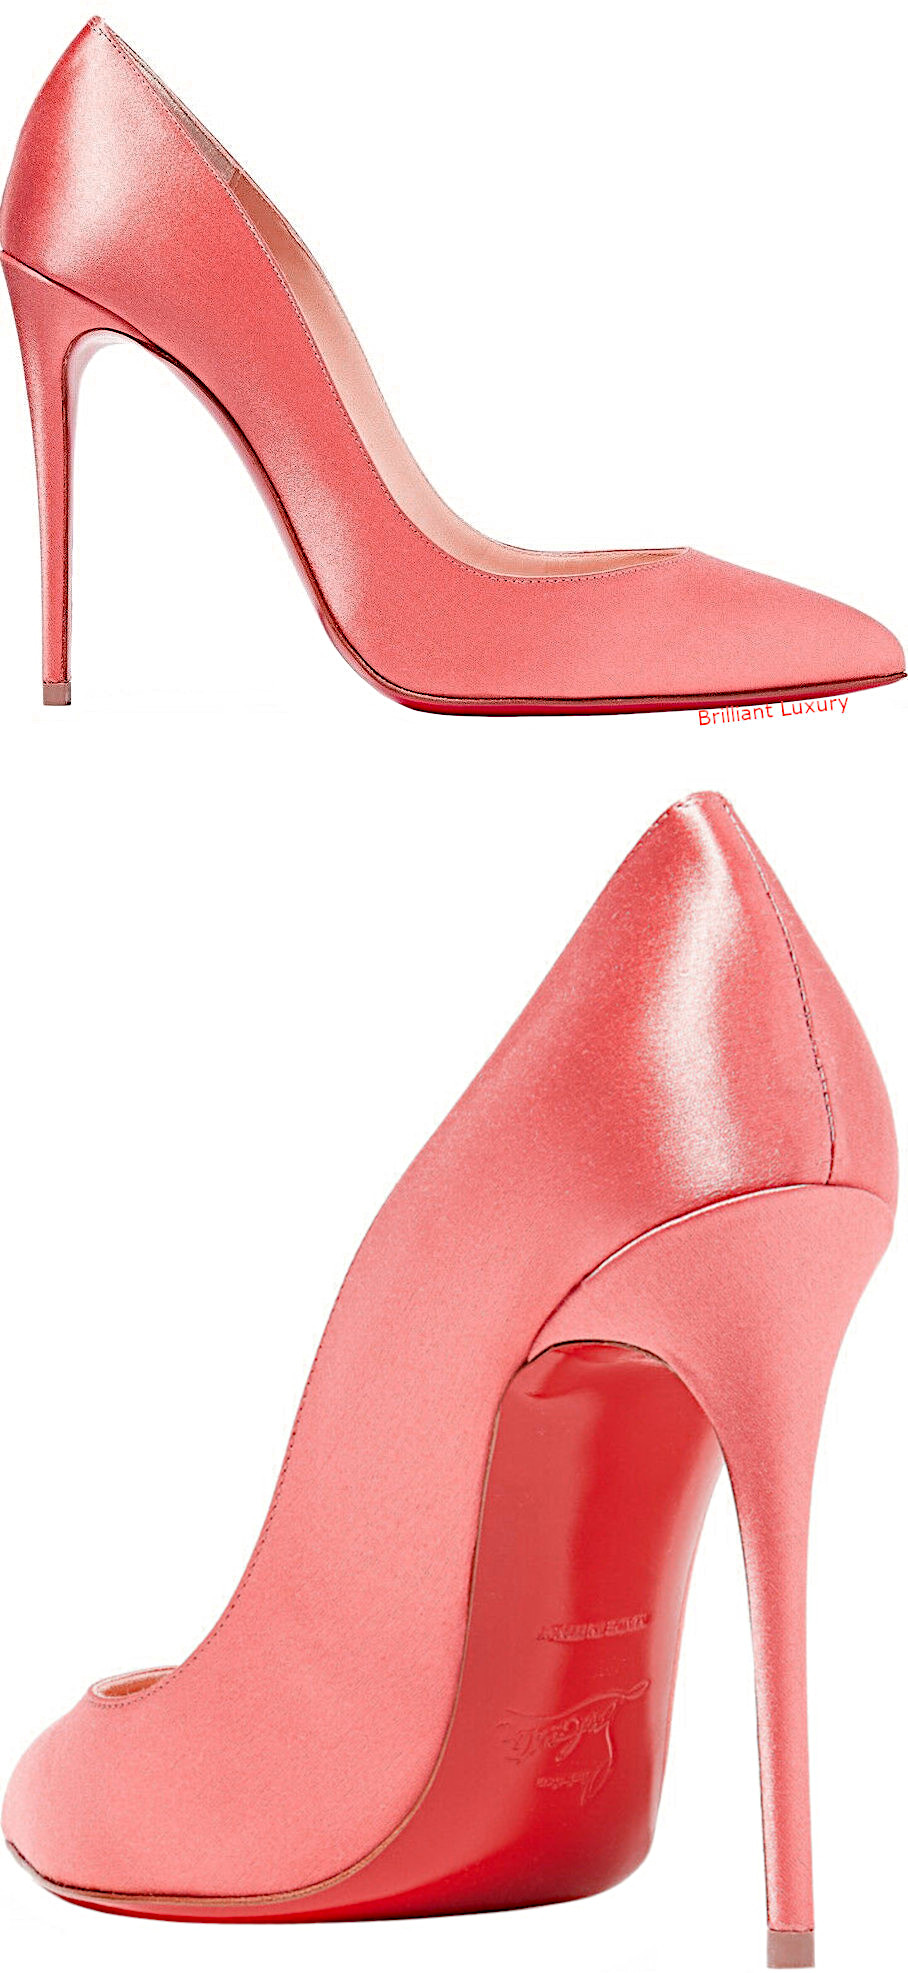 Christian Louboutin Pigalle Follies 100 Charlotte coral satin pumps